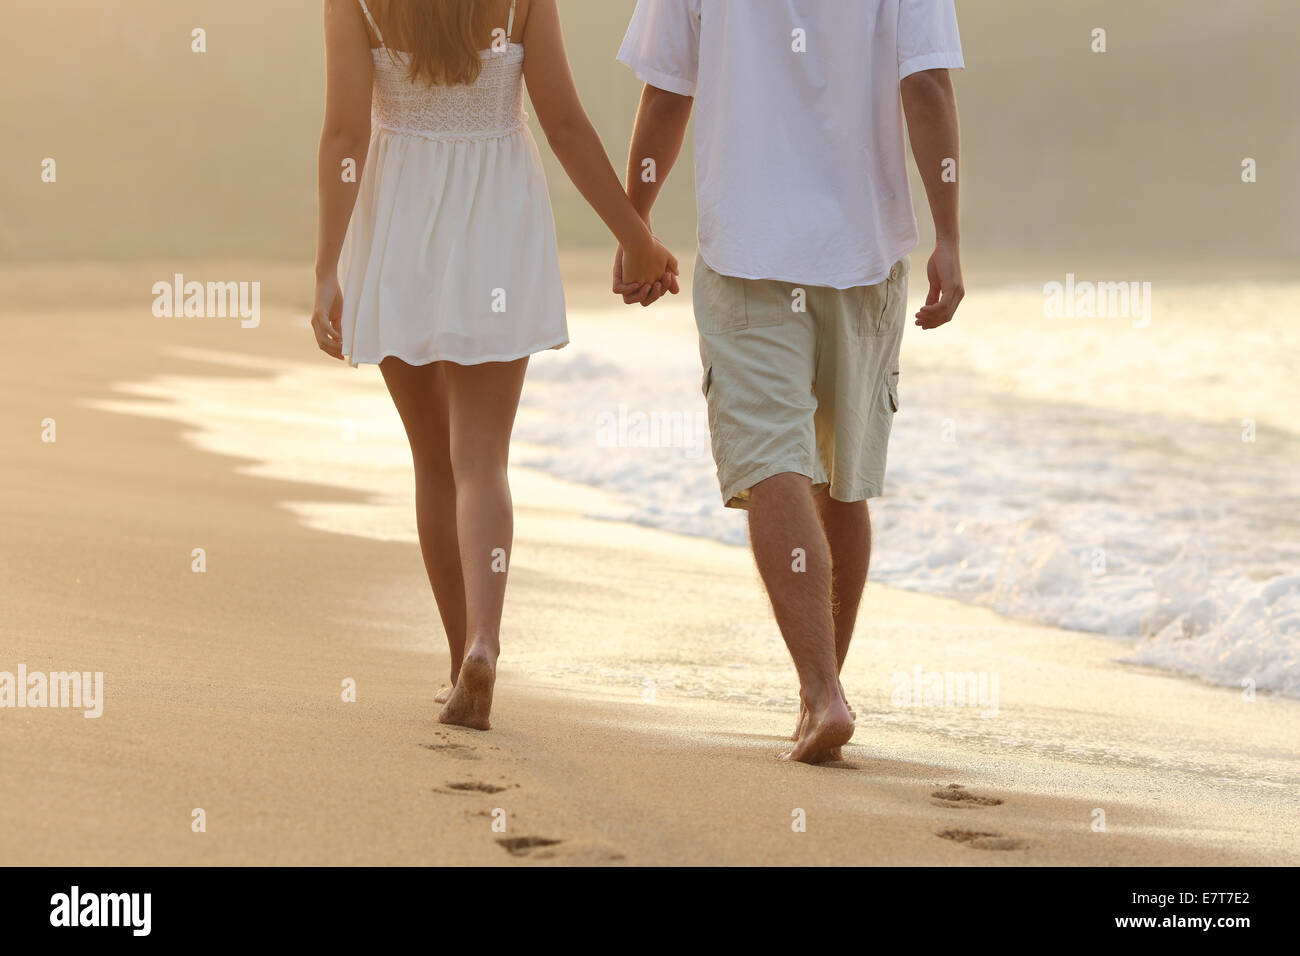 Back view of a couple taking a walk holding hands on the beach at sunrise - Stock Image